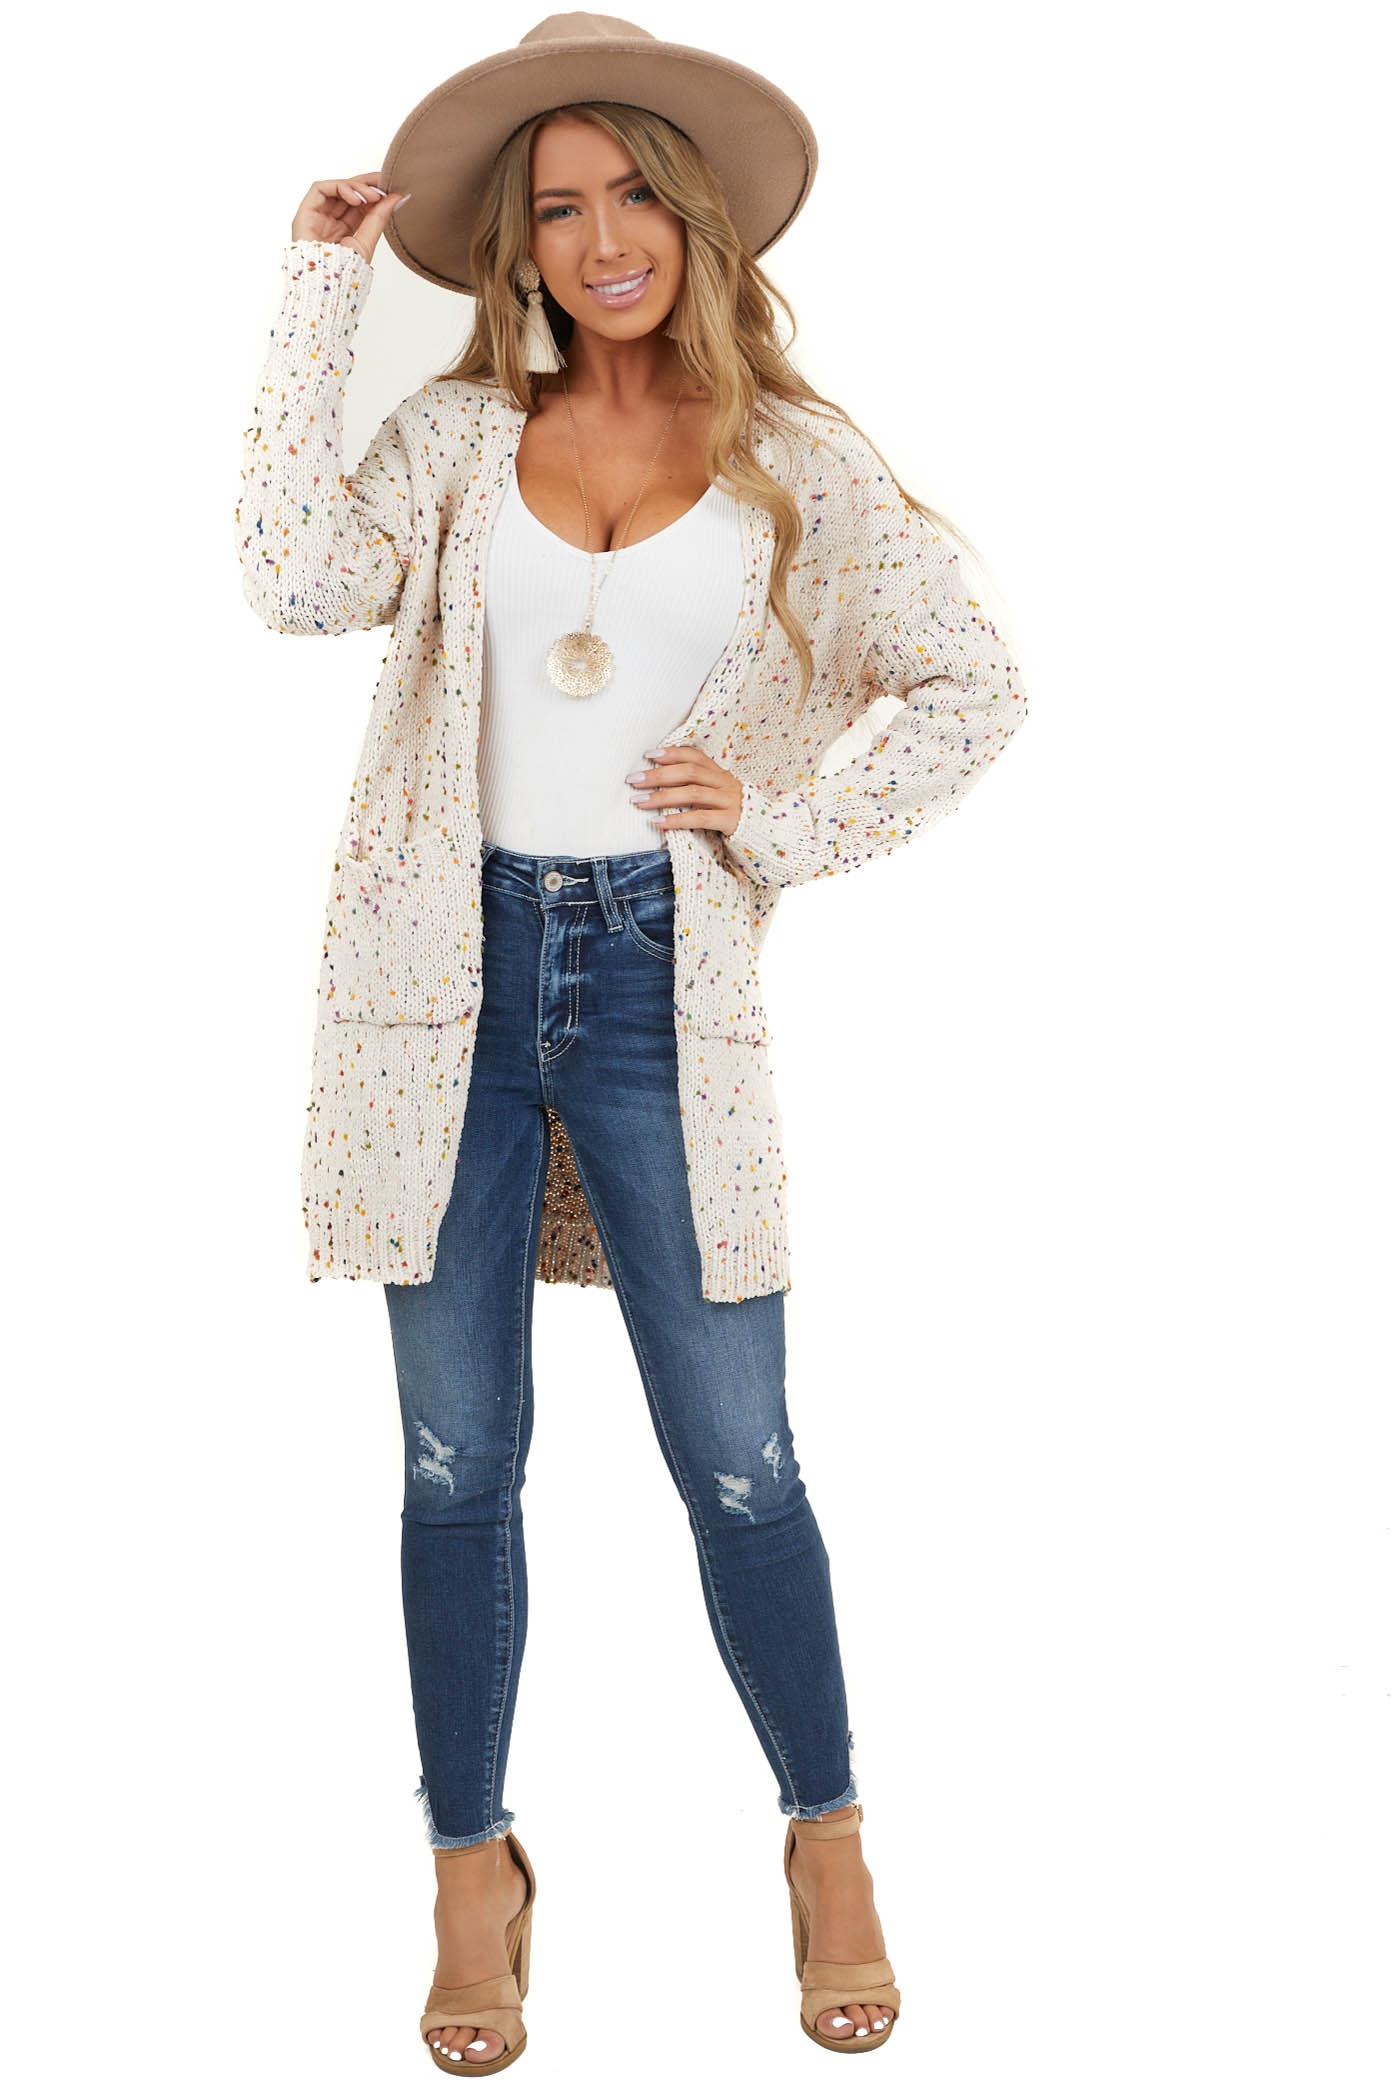 Oatmeal Knit Cardigan with Rainbow Speckles and Pockets